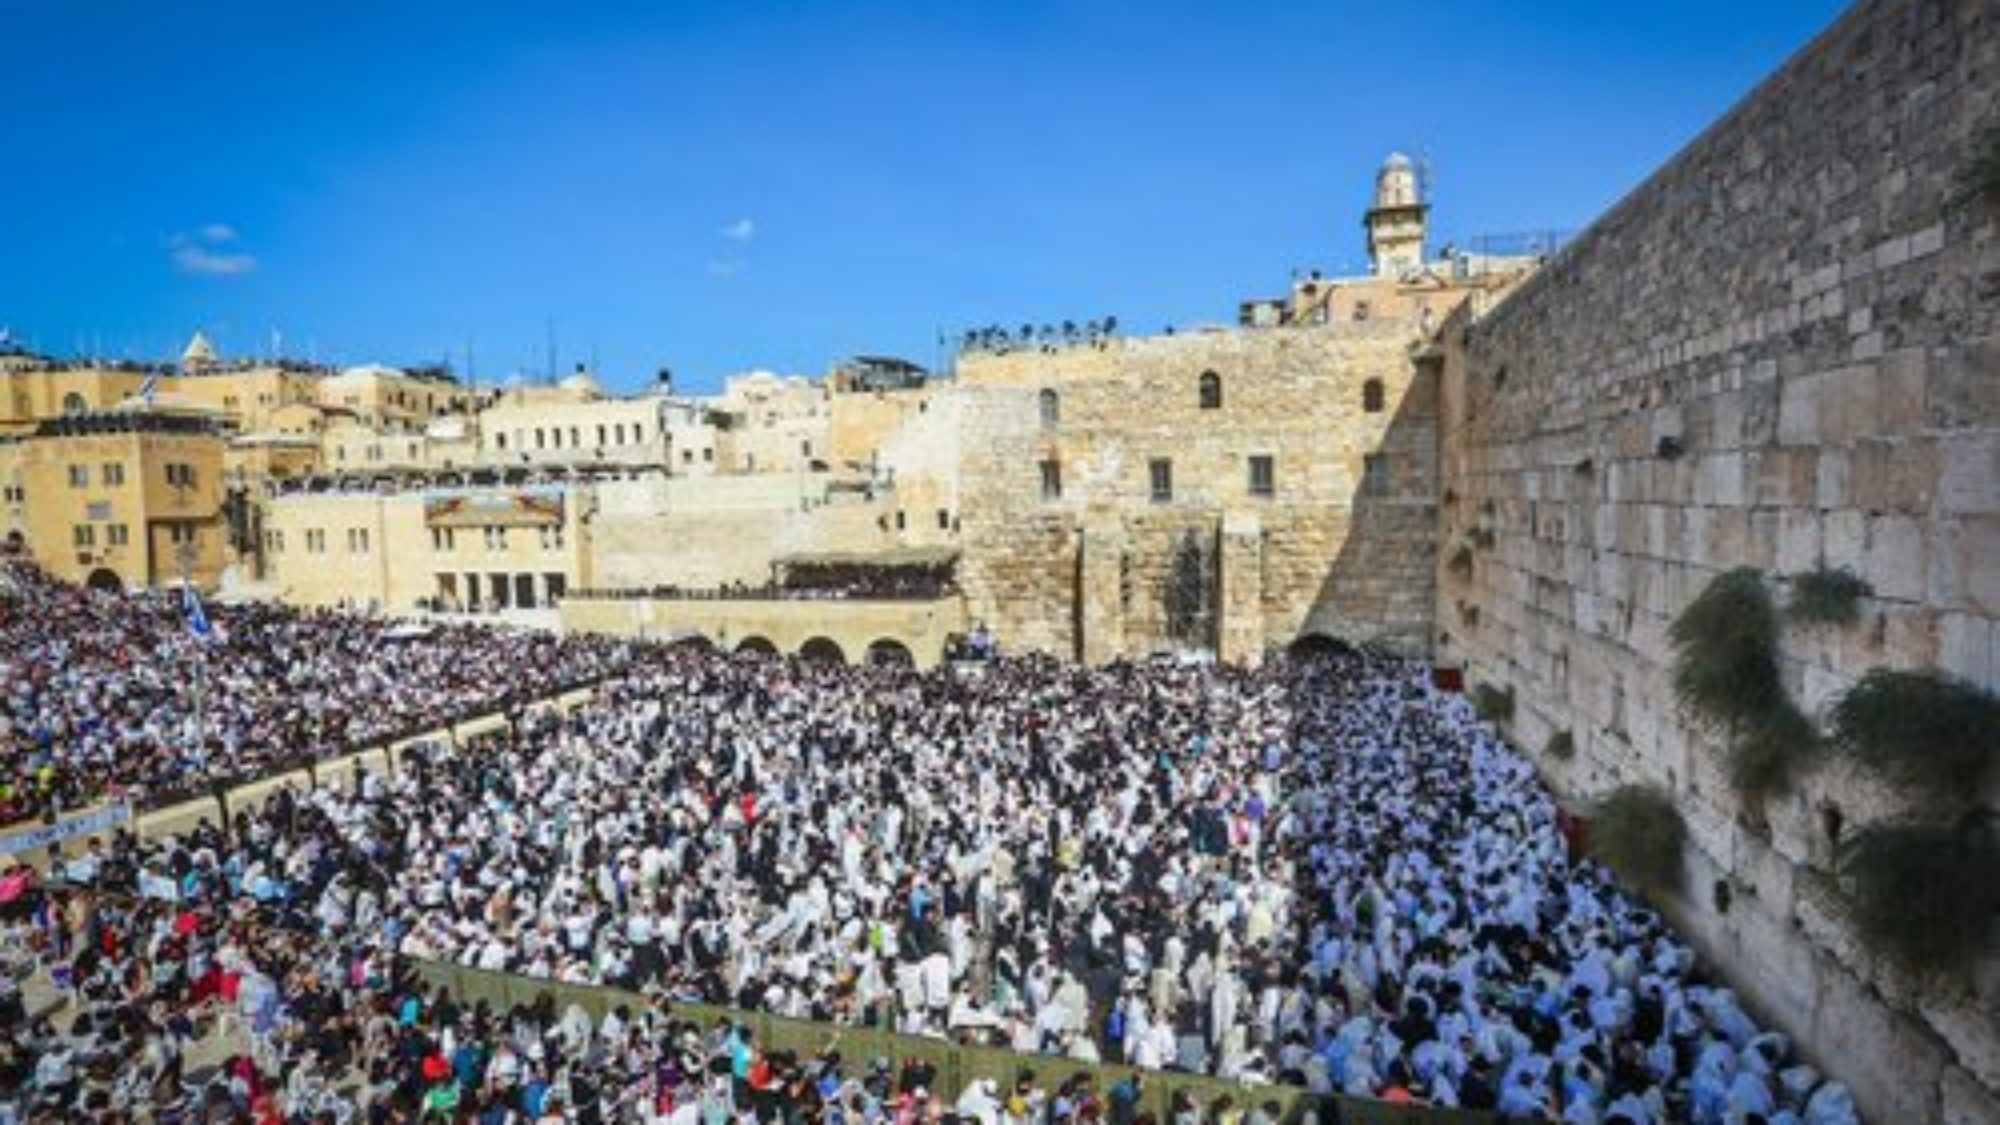 """Jewish worshippers pack the area in front of Jerusalem's Western Wall for the """"Birkat Kohanim,"""" or """"Priestly Blessing,"""" during the holiday of Sukkot on Oct. 8, 2017. Credit: Yaakov Lederman/Flash90."""